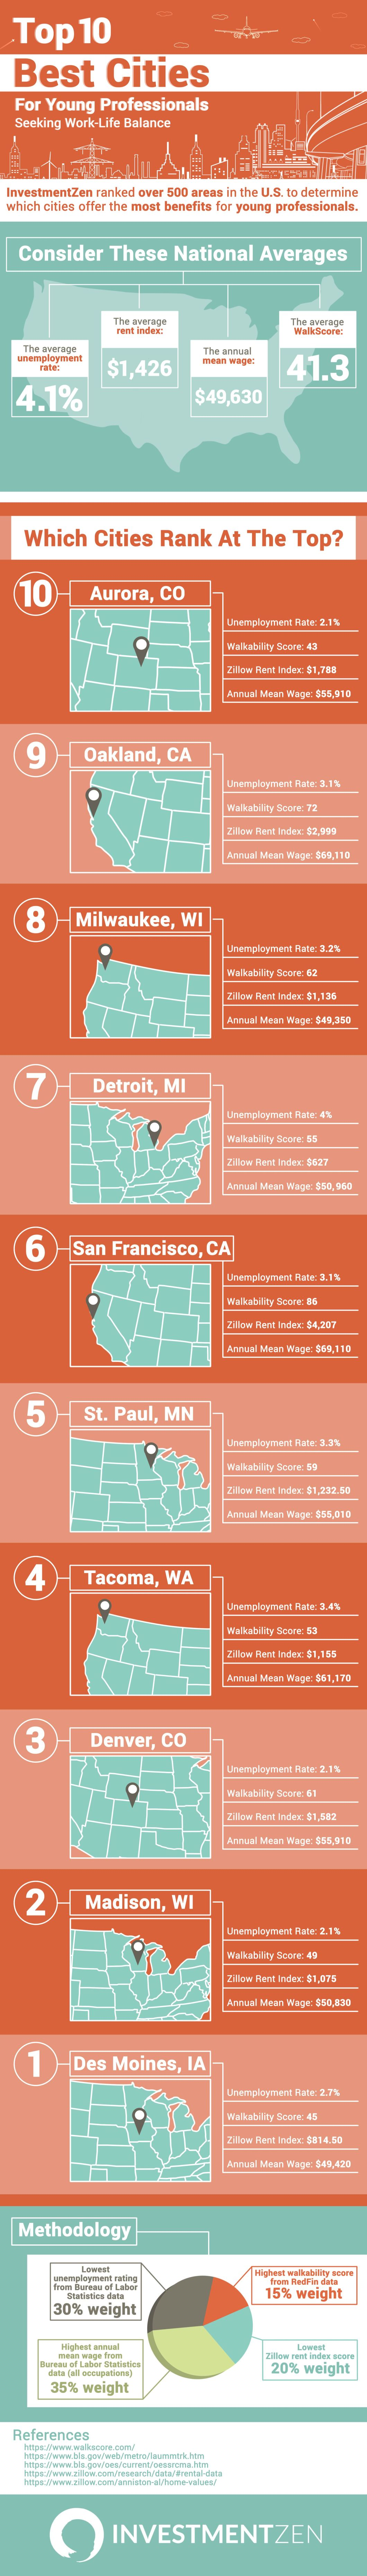 Work-Life Balance for Young Professionals: Head to These Top 10 Cities - Infographic